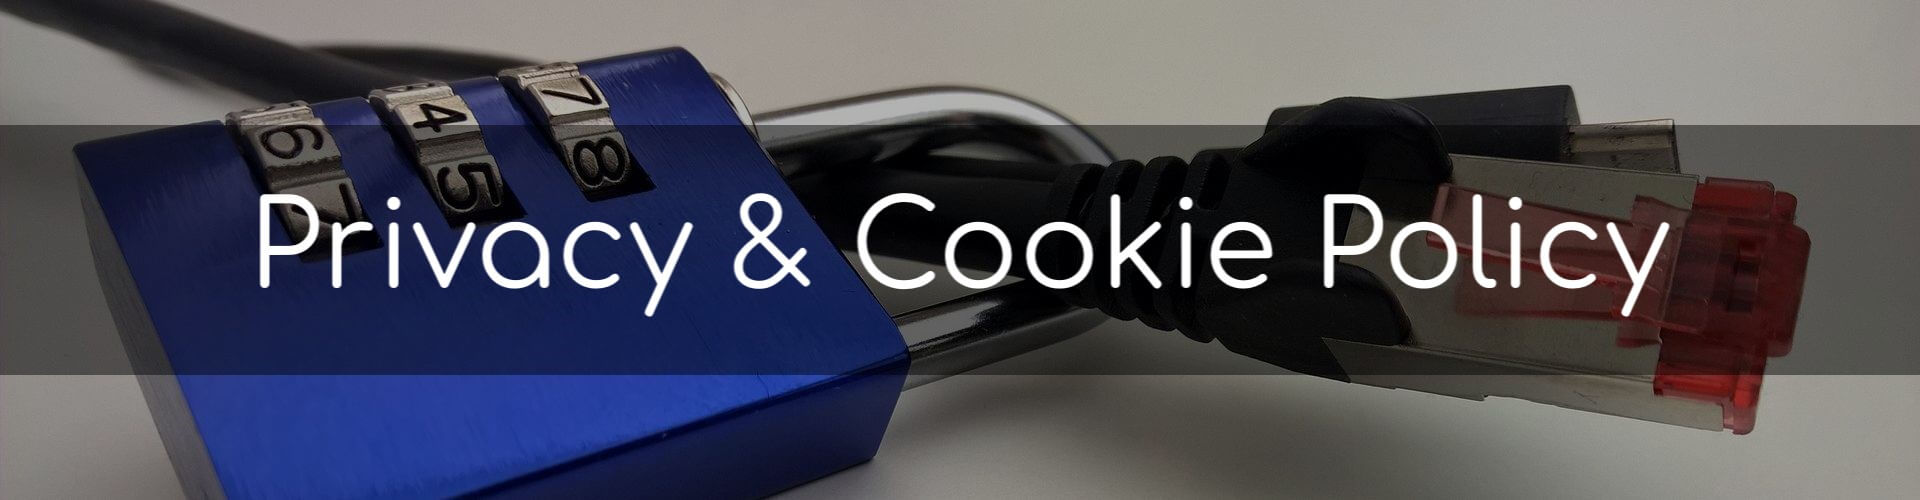 Privacy & Cookie Policy - Image of a combination padlock and an ethernet cable.